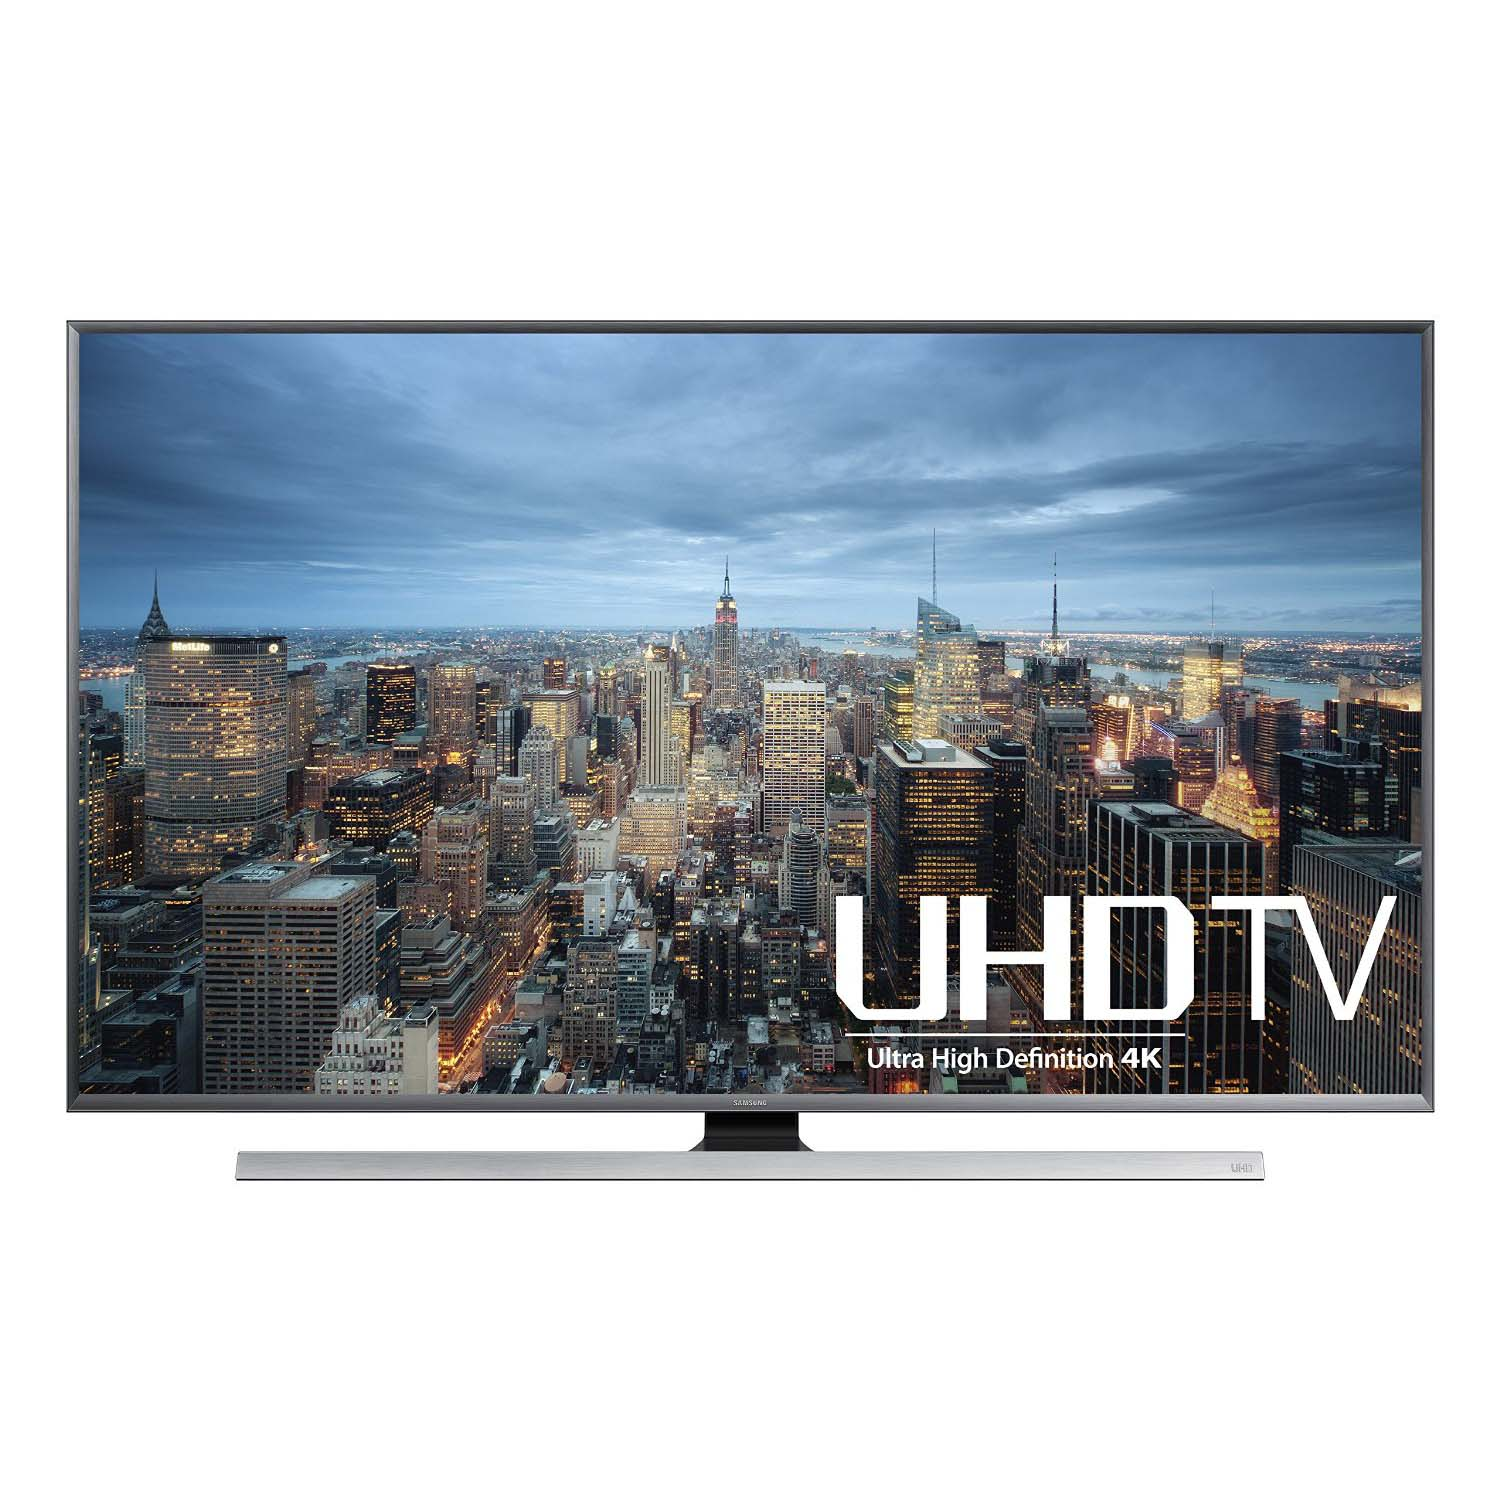 Samsung UN75JU7100 75-Inch 4K Ultra HD 3D Smart LED TV (2015 Model) *관부가세 별도*